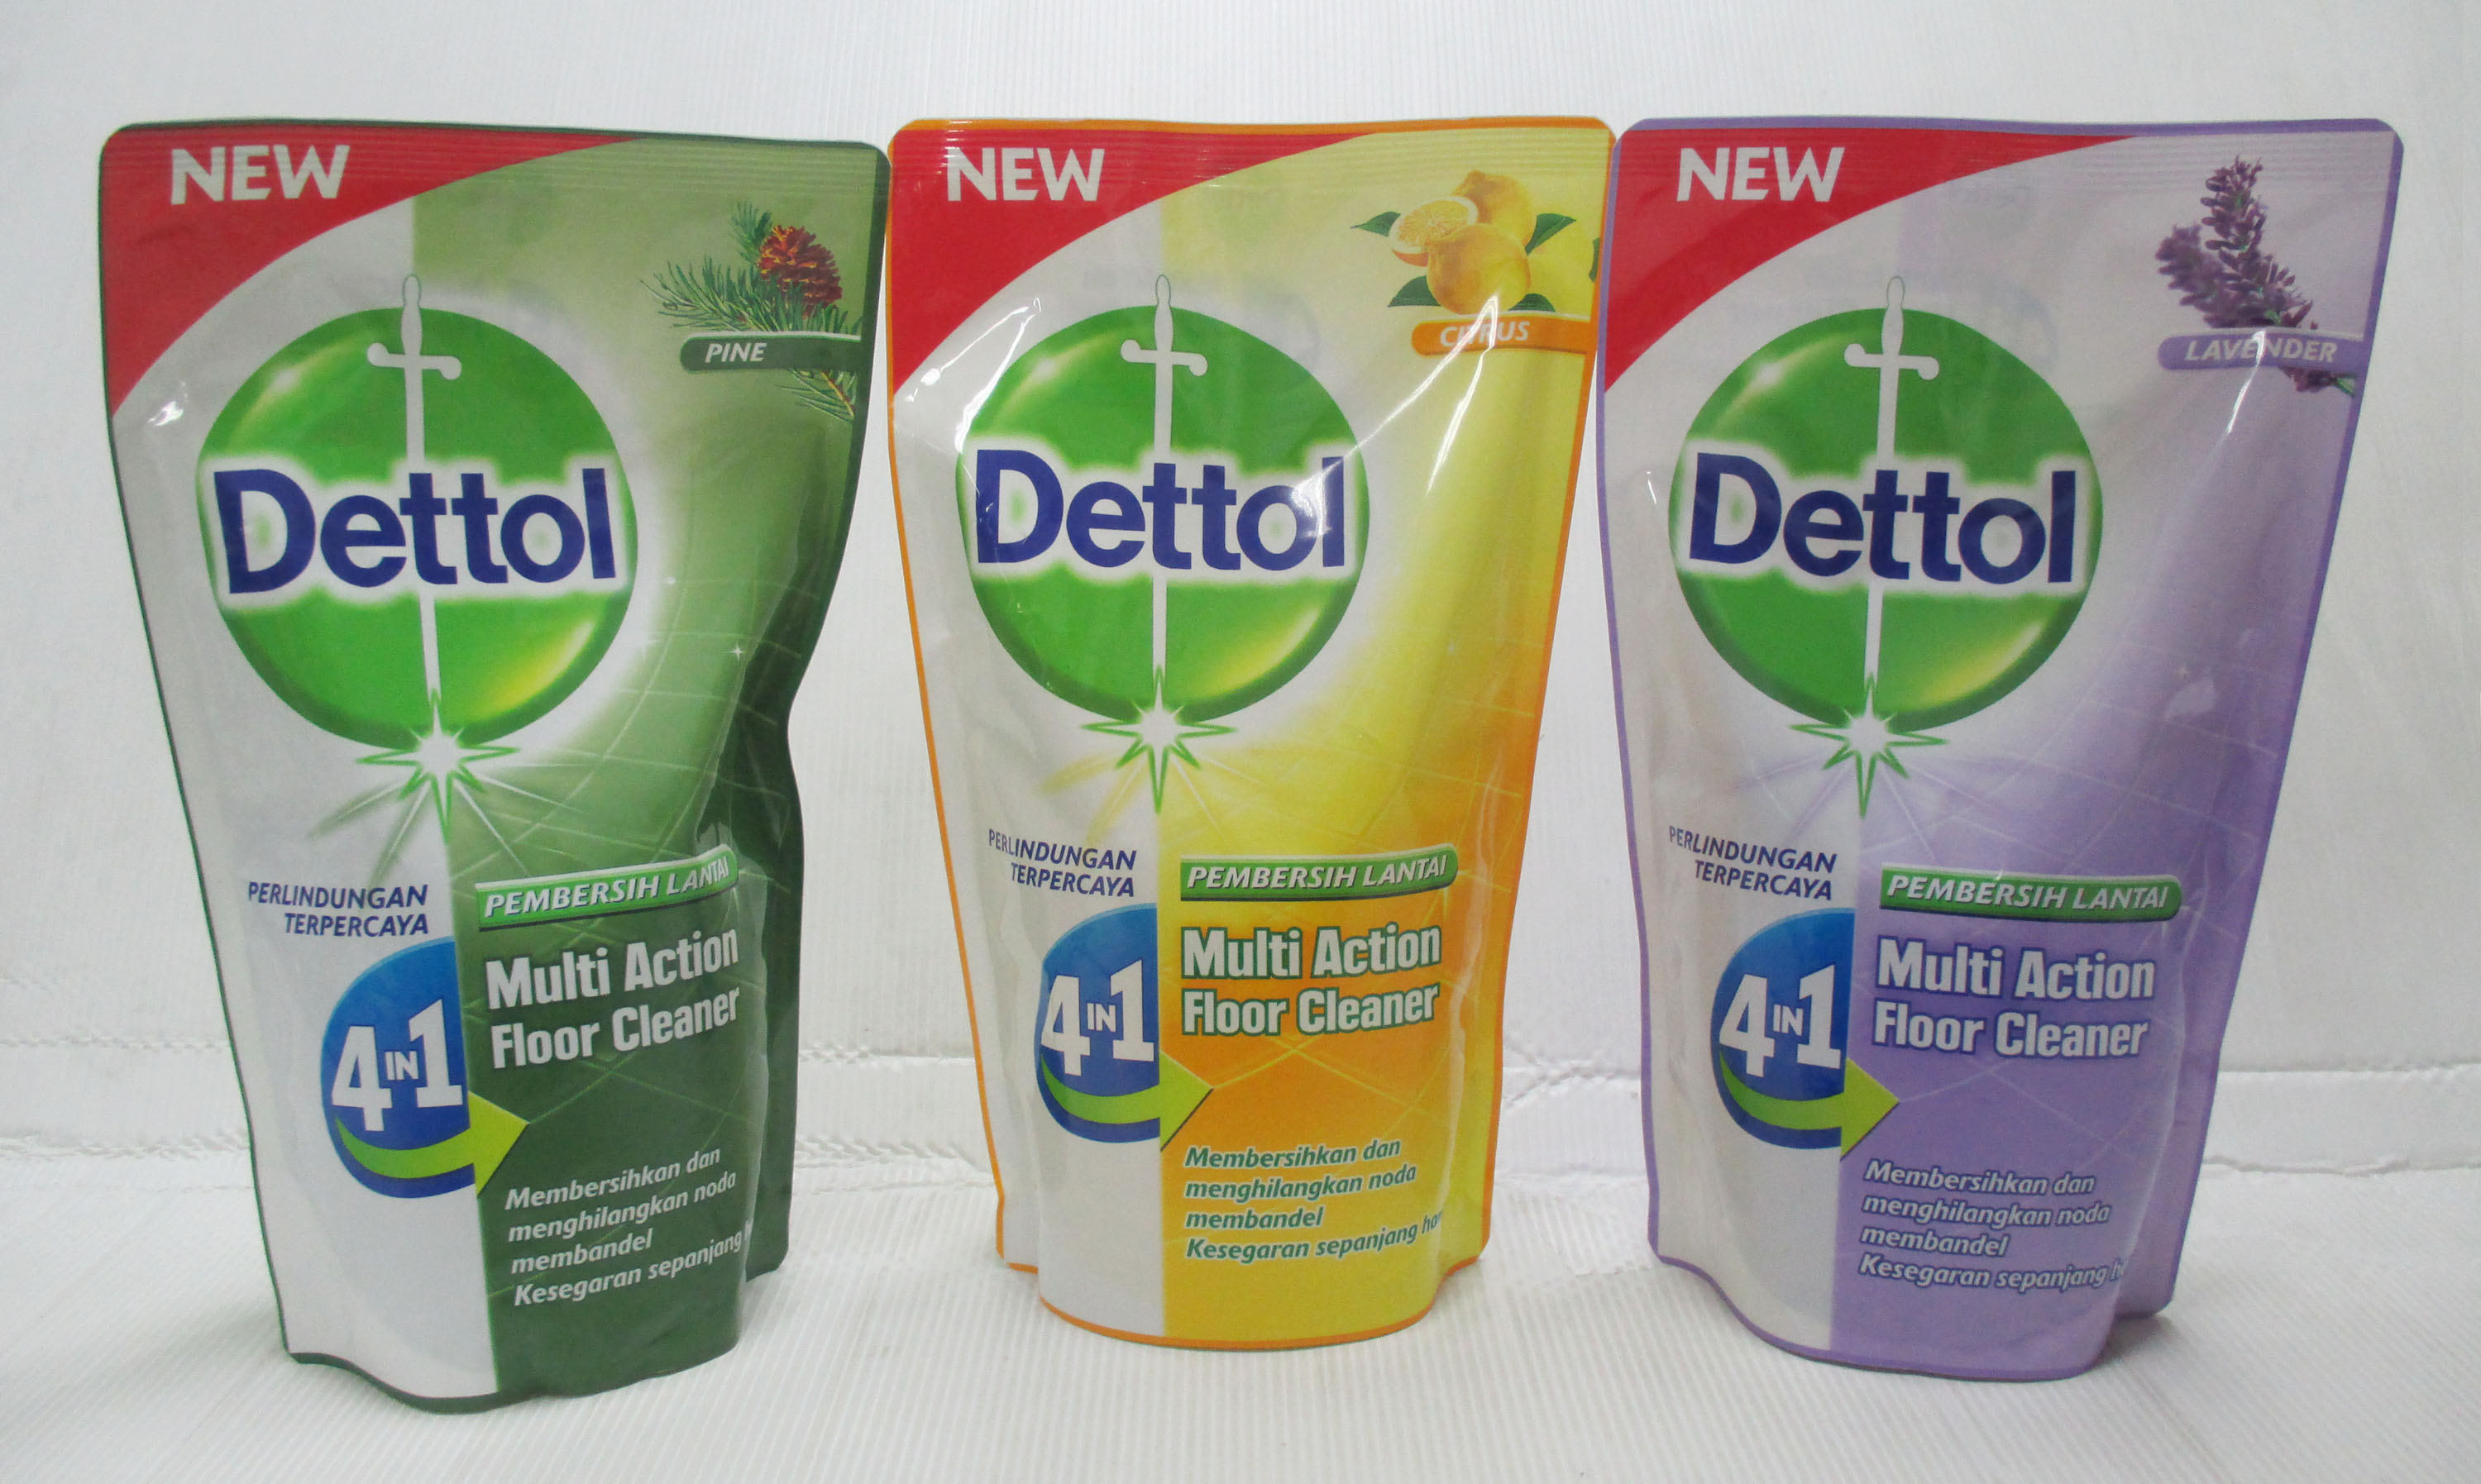 Dettol-Multi-Action-Floor-Cleaner-4in1-700ml